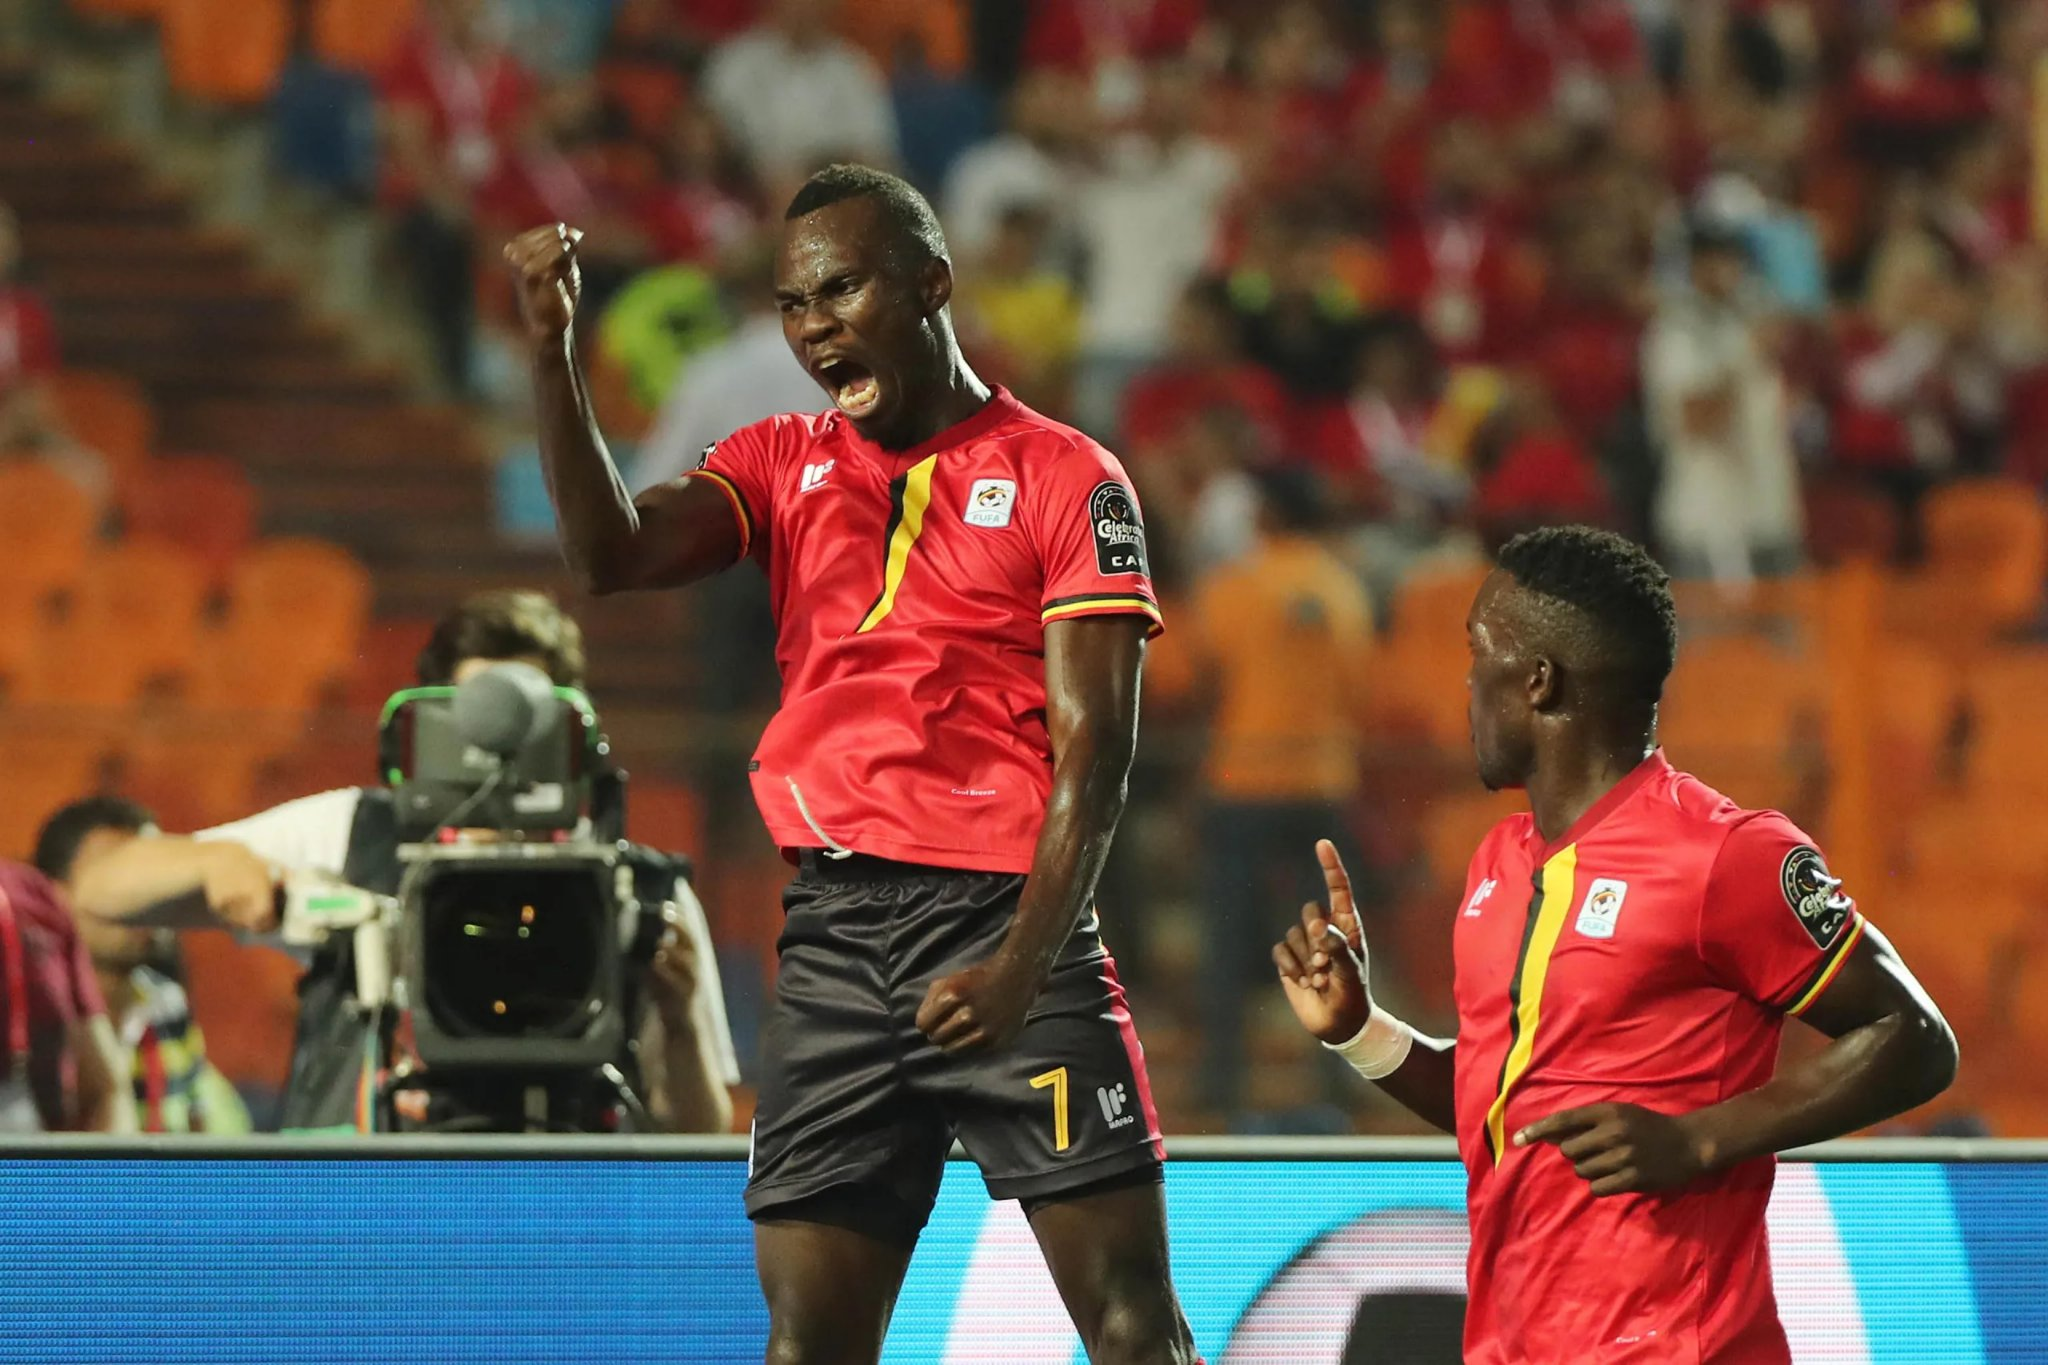 The Cranes finished second in group B.